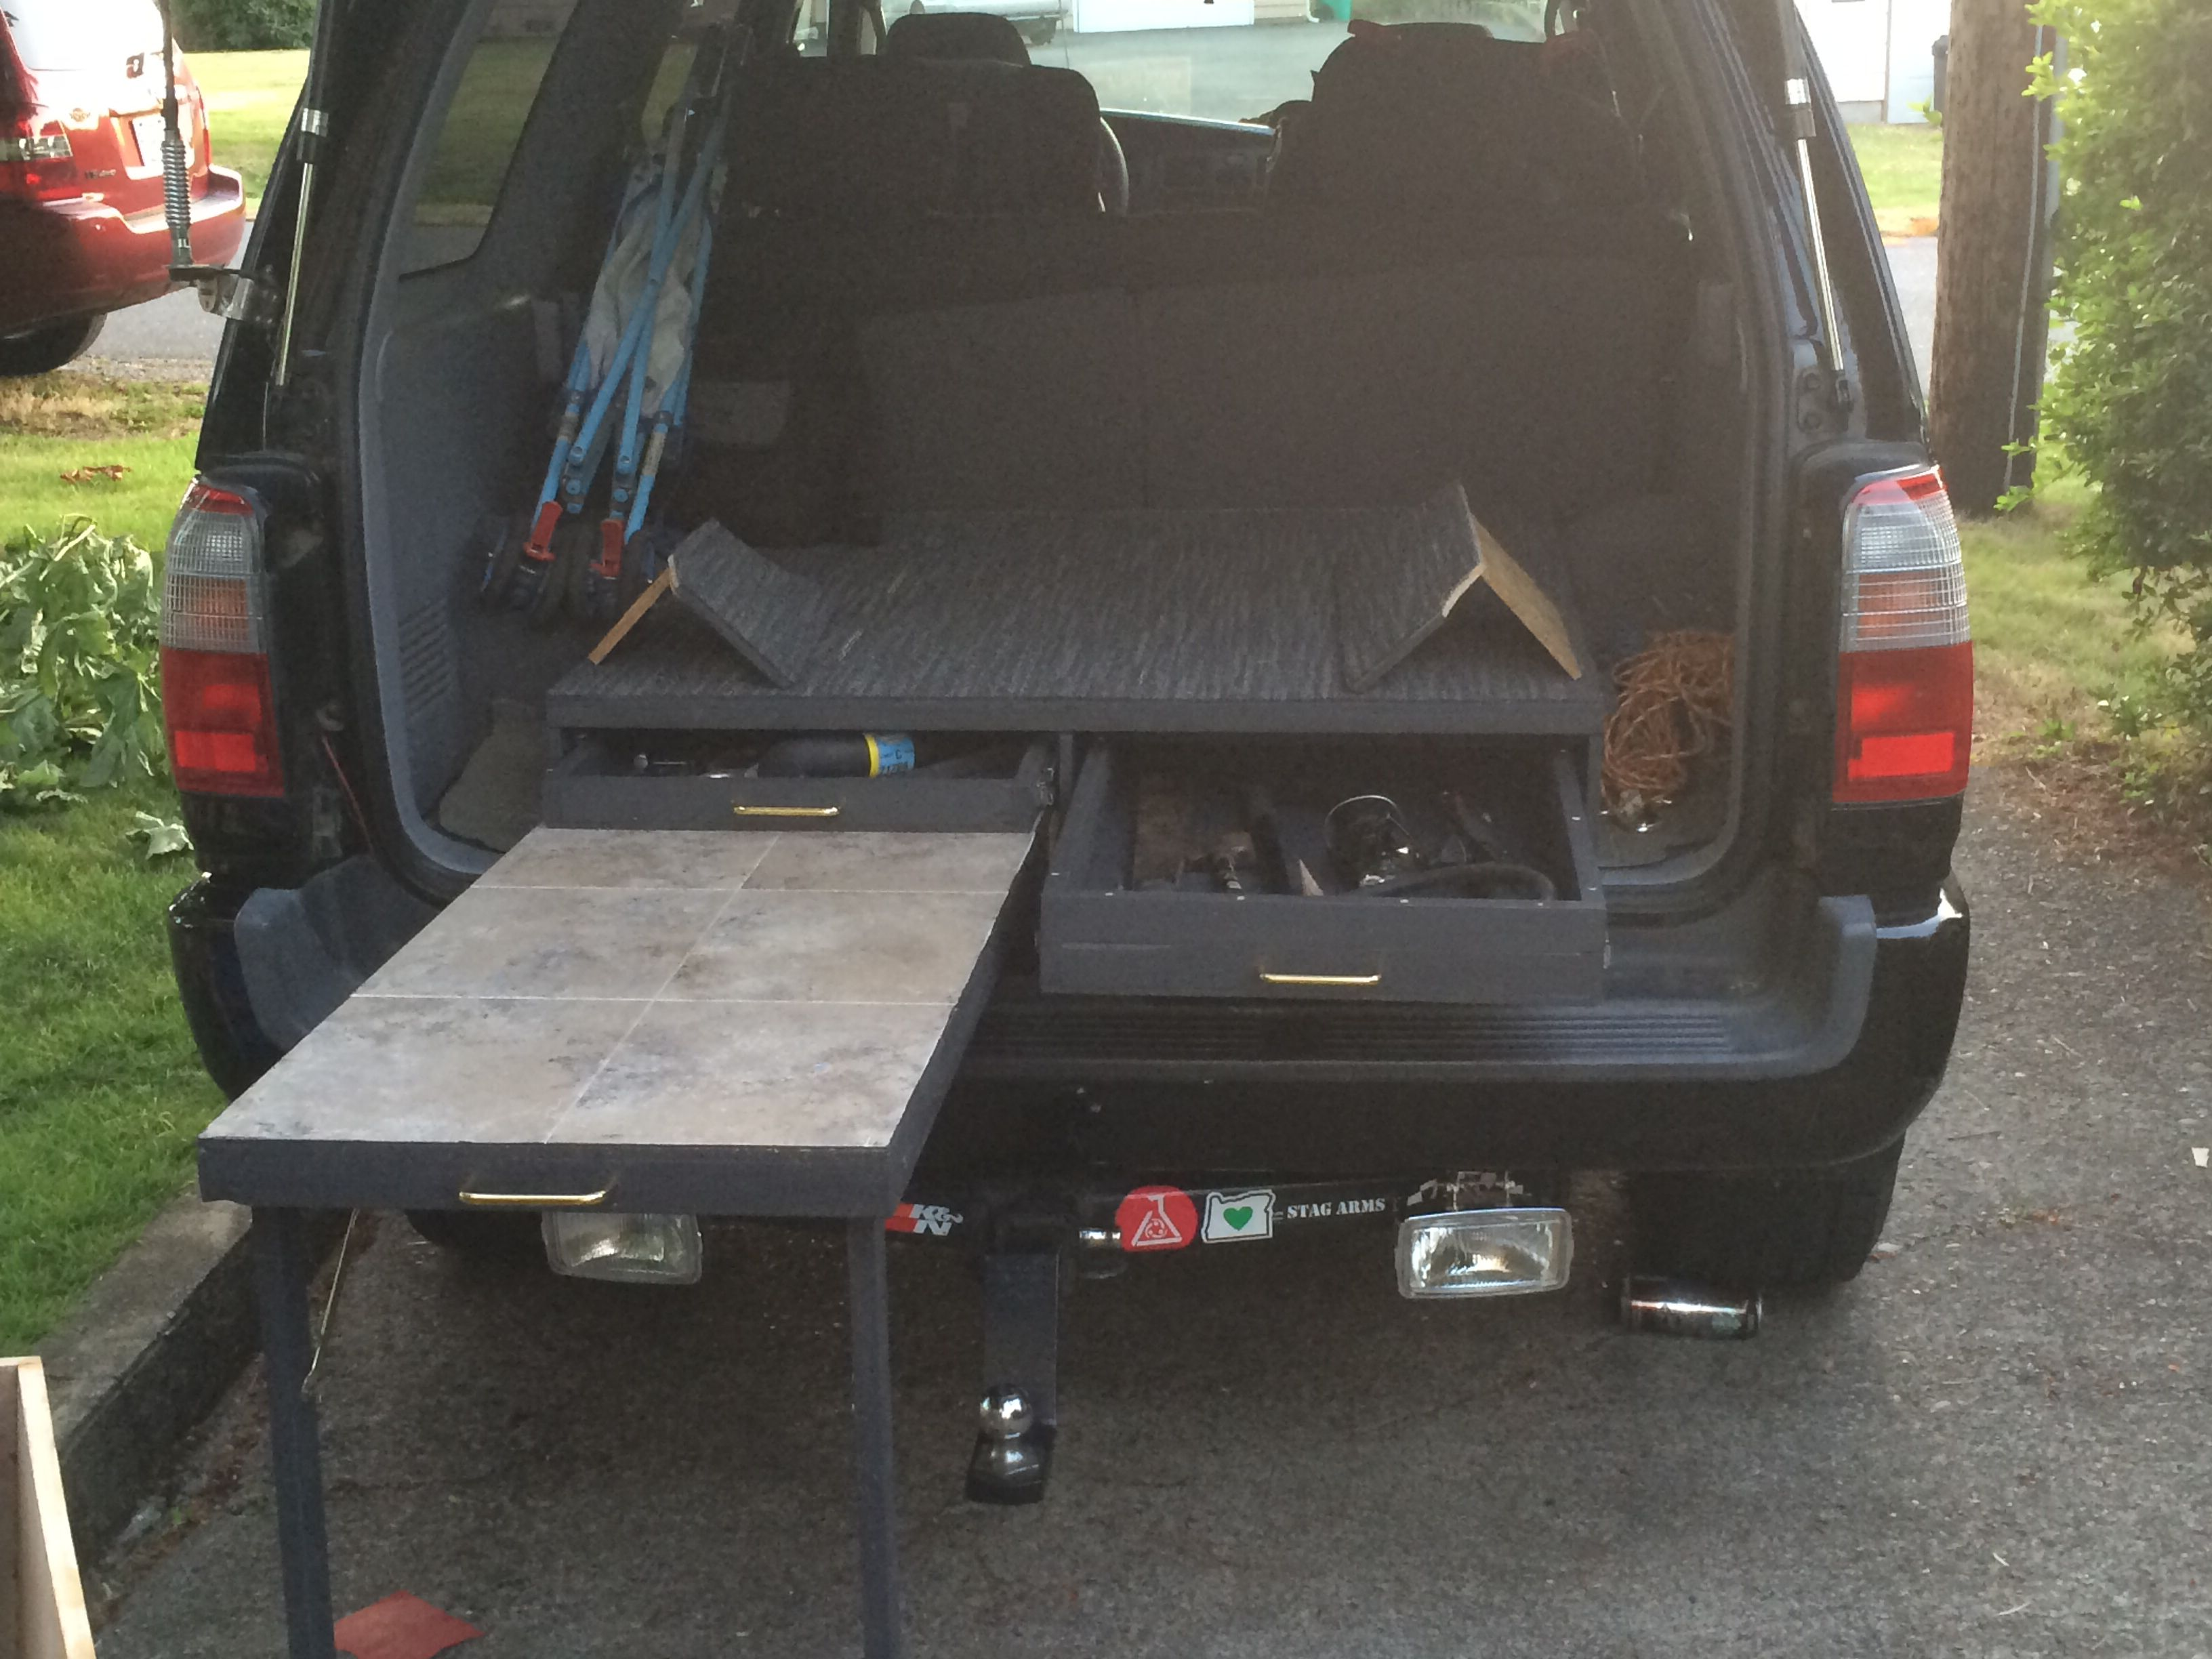 Completed My Cargo Box Two Drawers And A Pull Out Table Weighs About 40lbs Cost About 40 Bucks Jeep Interiors Suv Camping Toyota 4runner